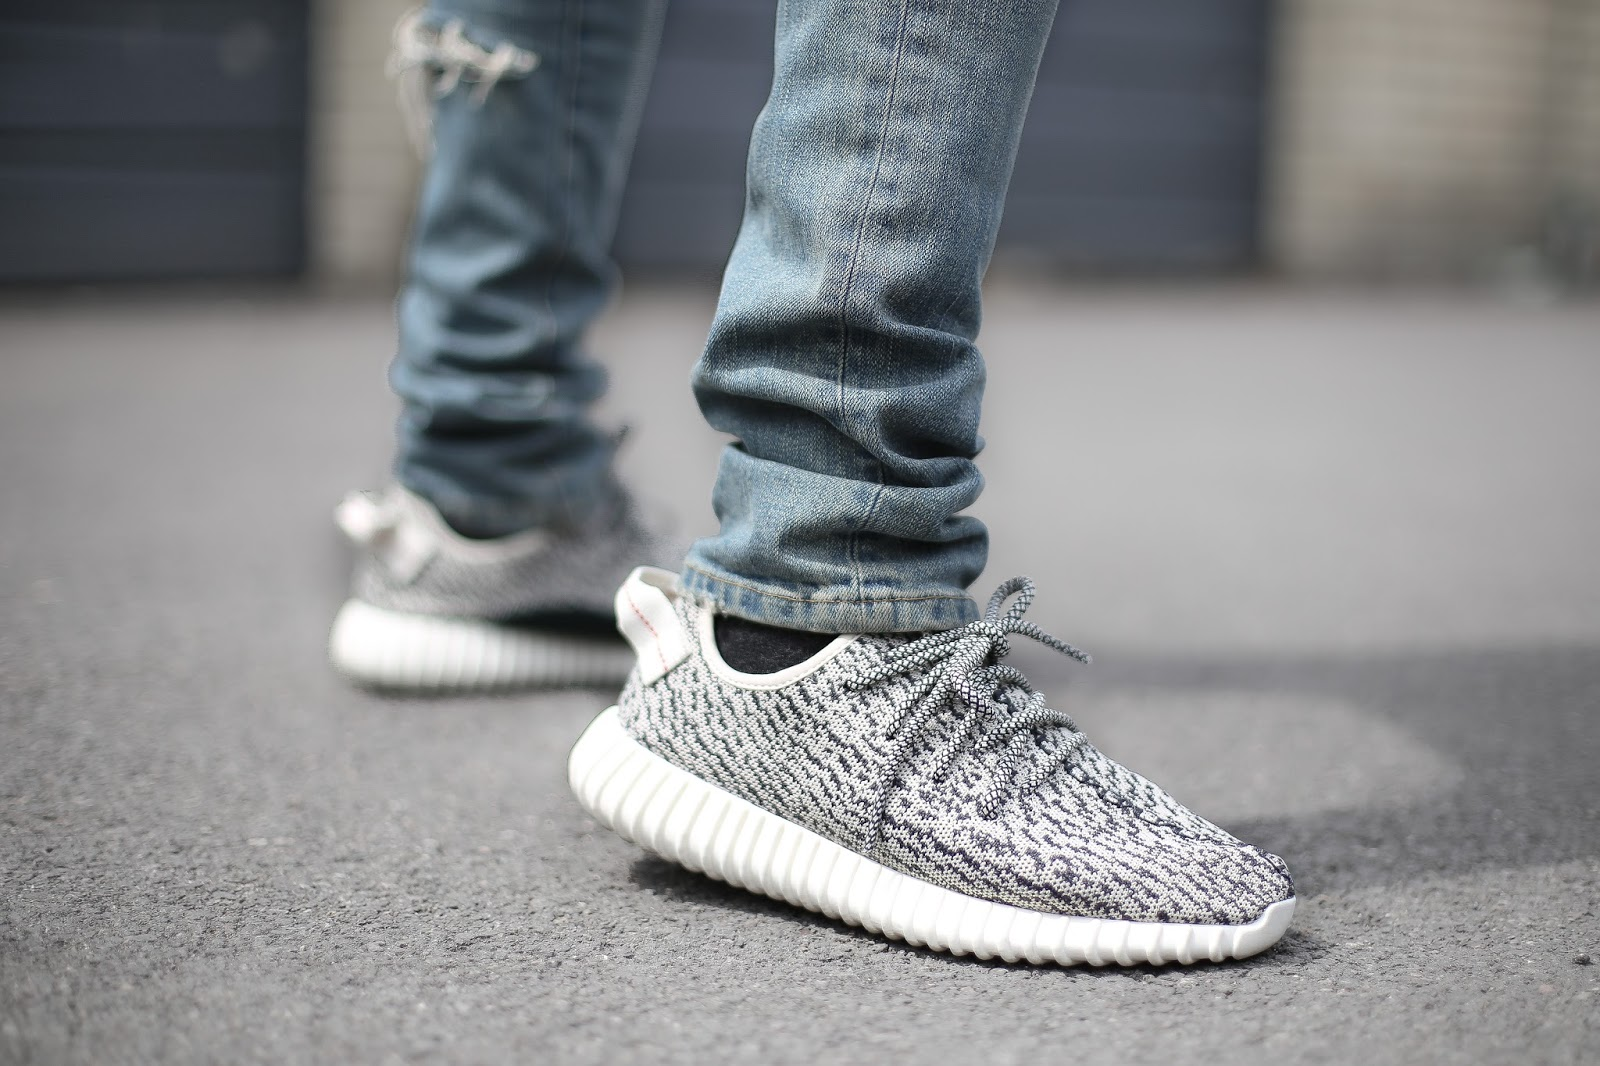 fbedfbb7f Adidas Yeezy Boost 350 On Feet los-granados-apartment.co.uk